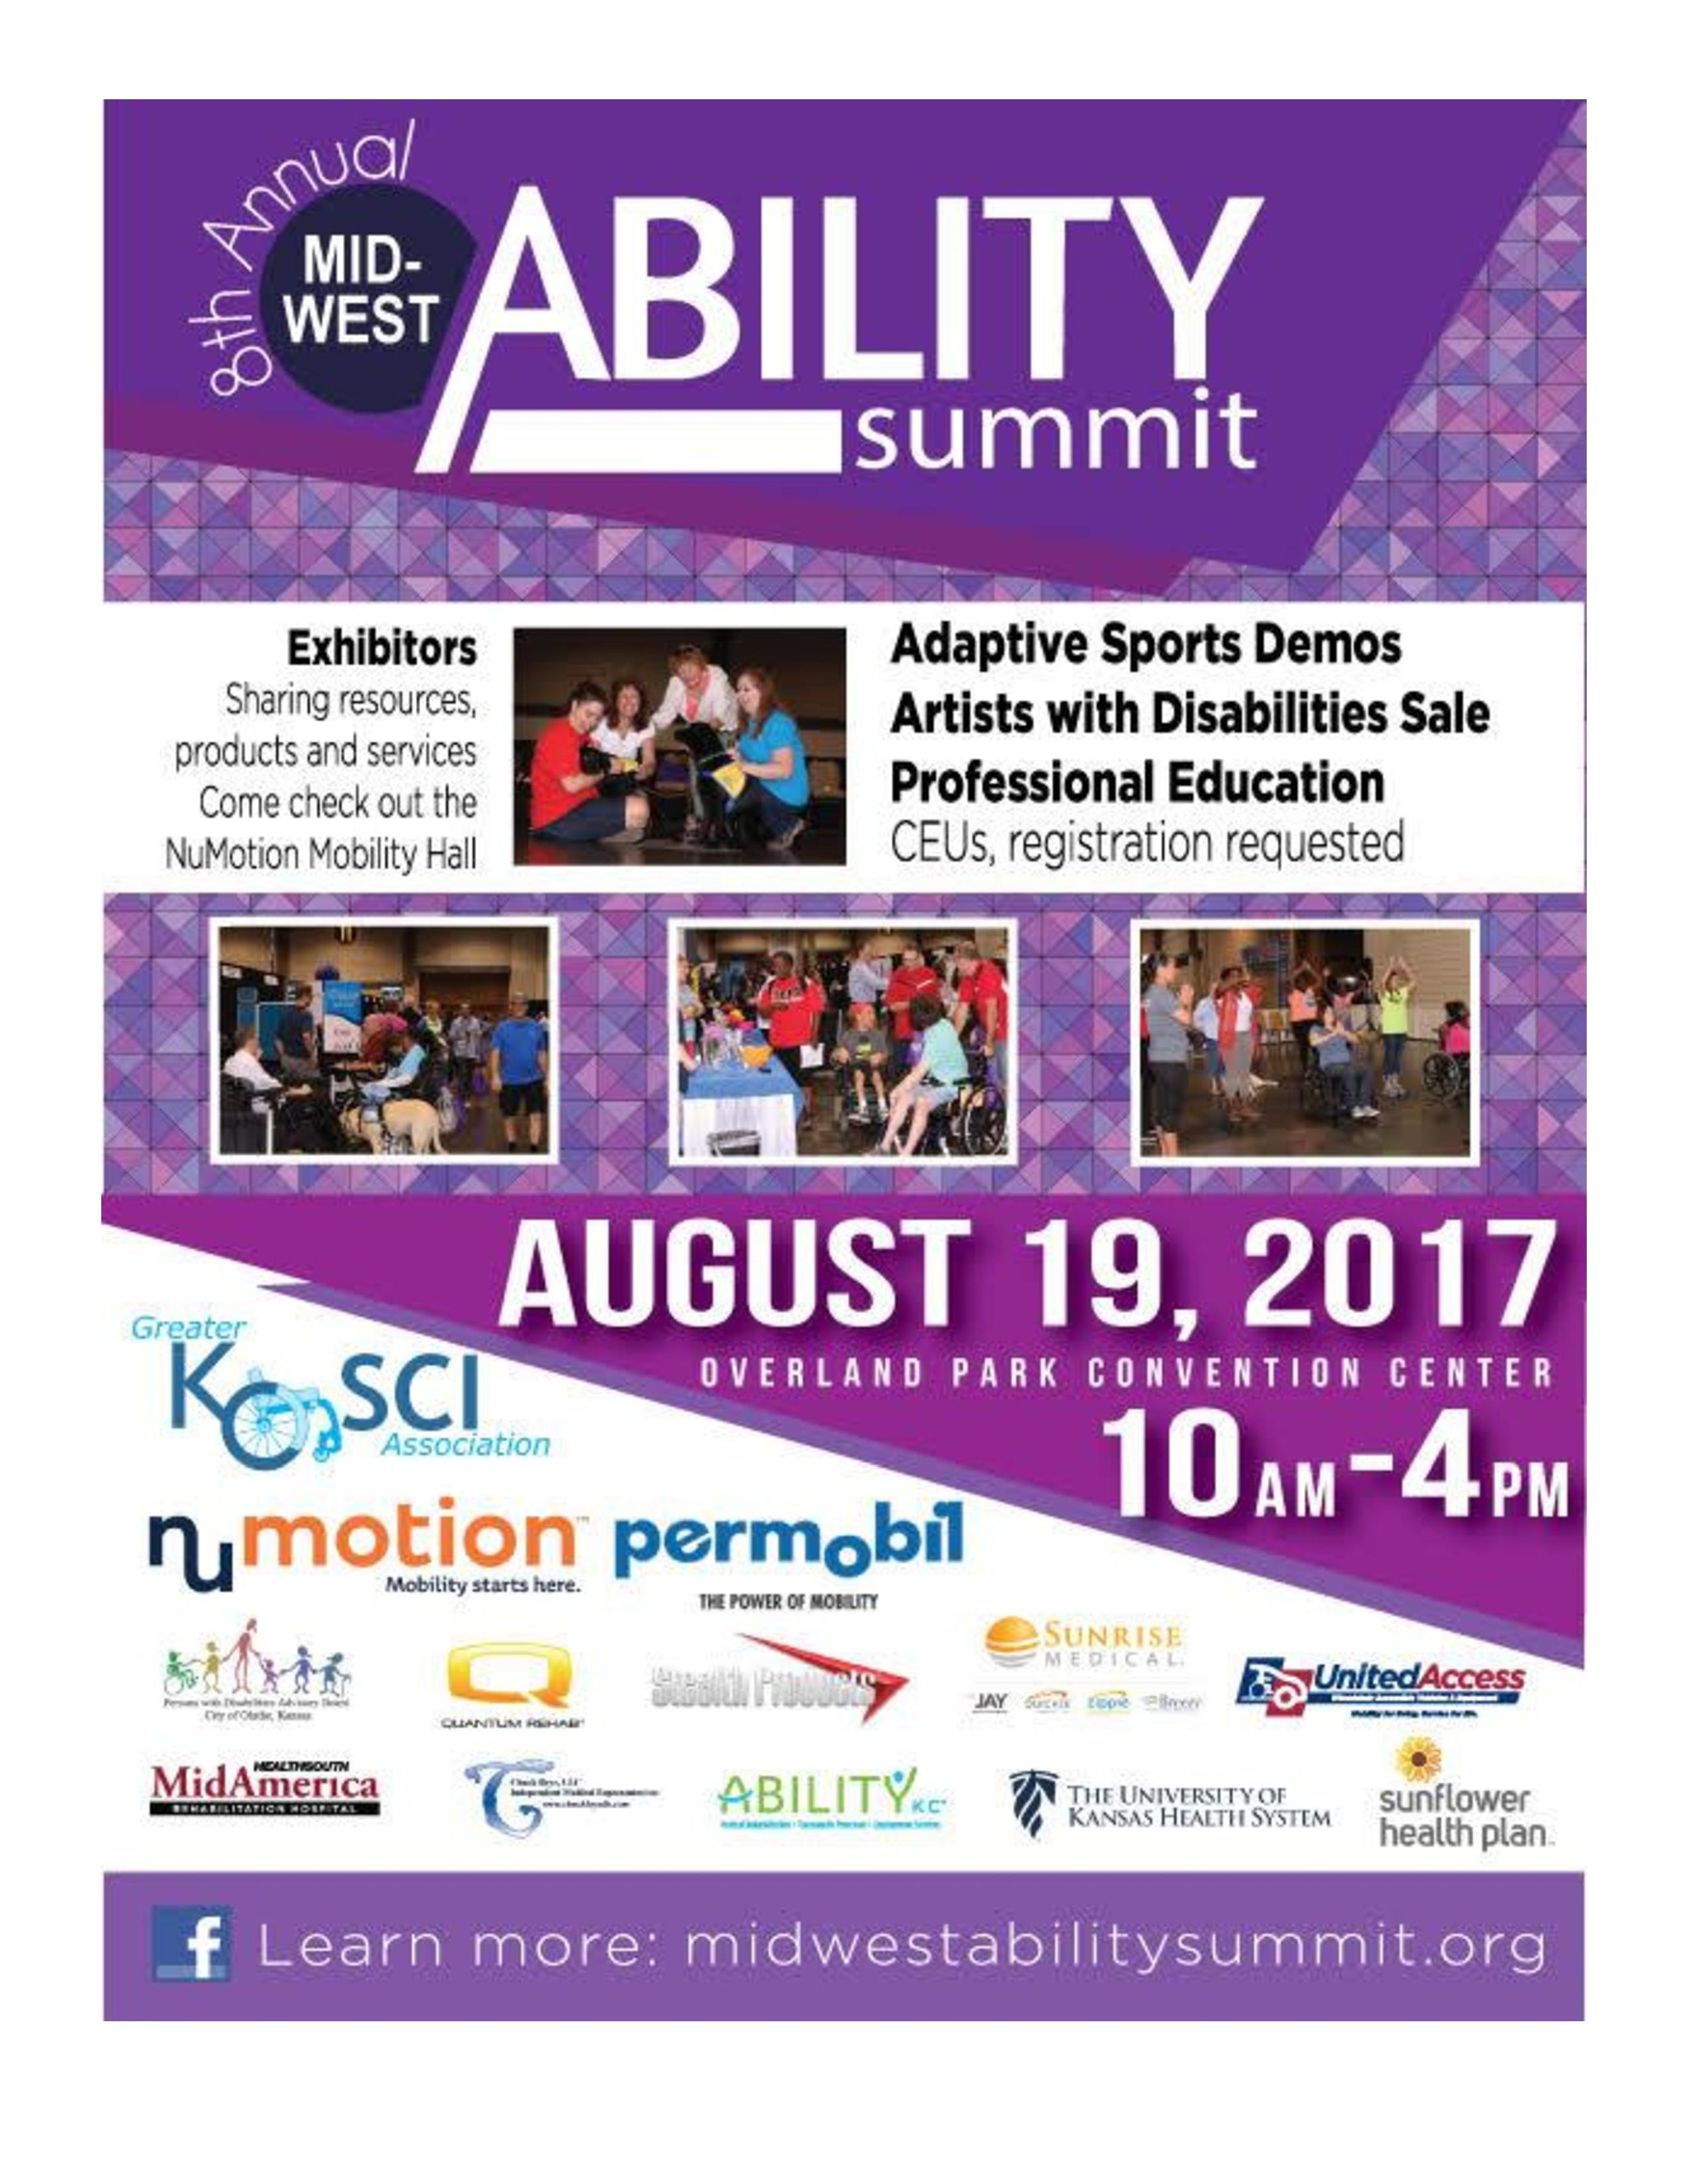 Midwest Ability Summit 2017